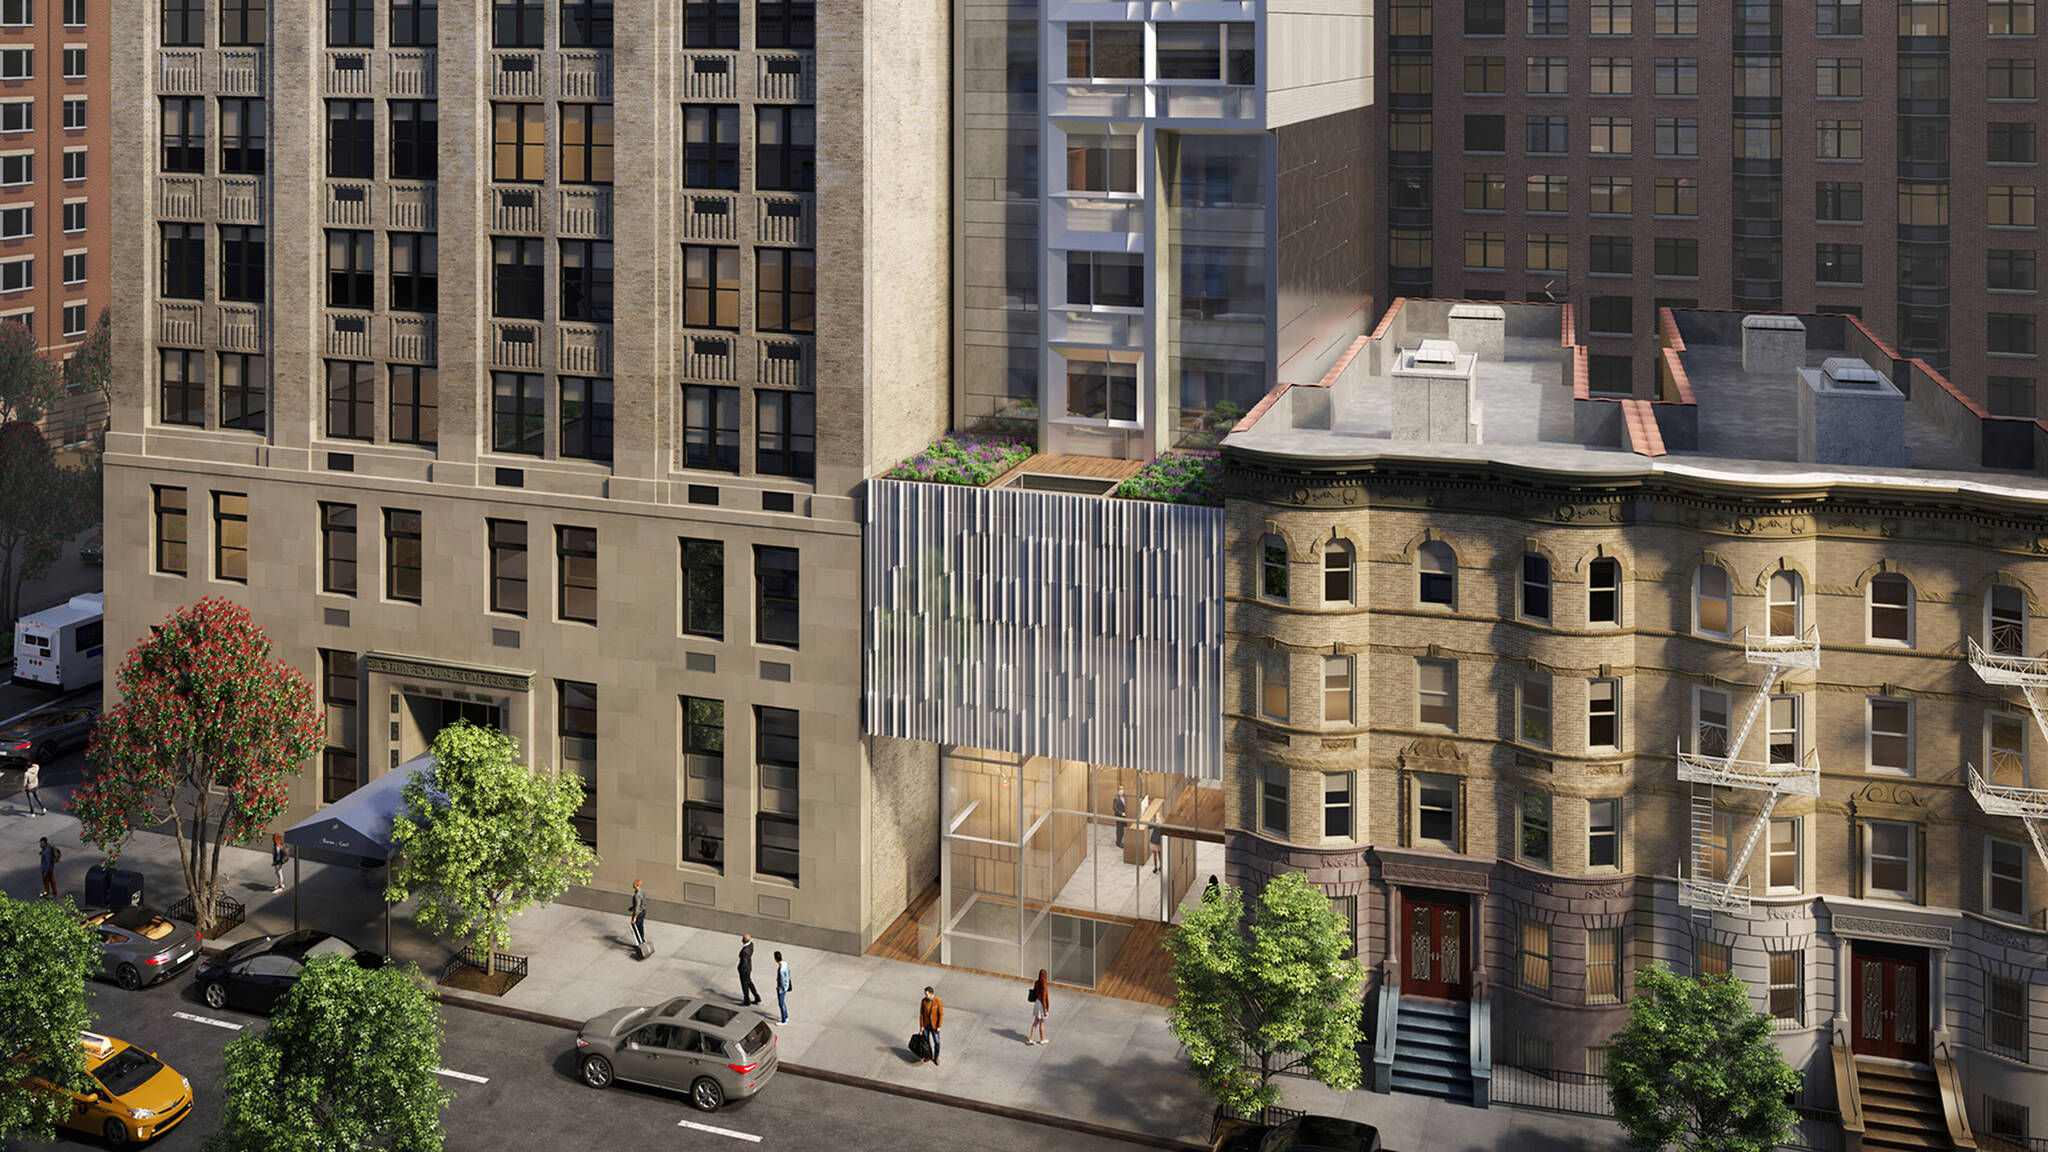 Brooklyn Motto Hotel project on Schermerhorn Street in Brooklyn, New York designed by the architecture studio Danny Forster & Architecture